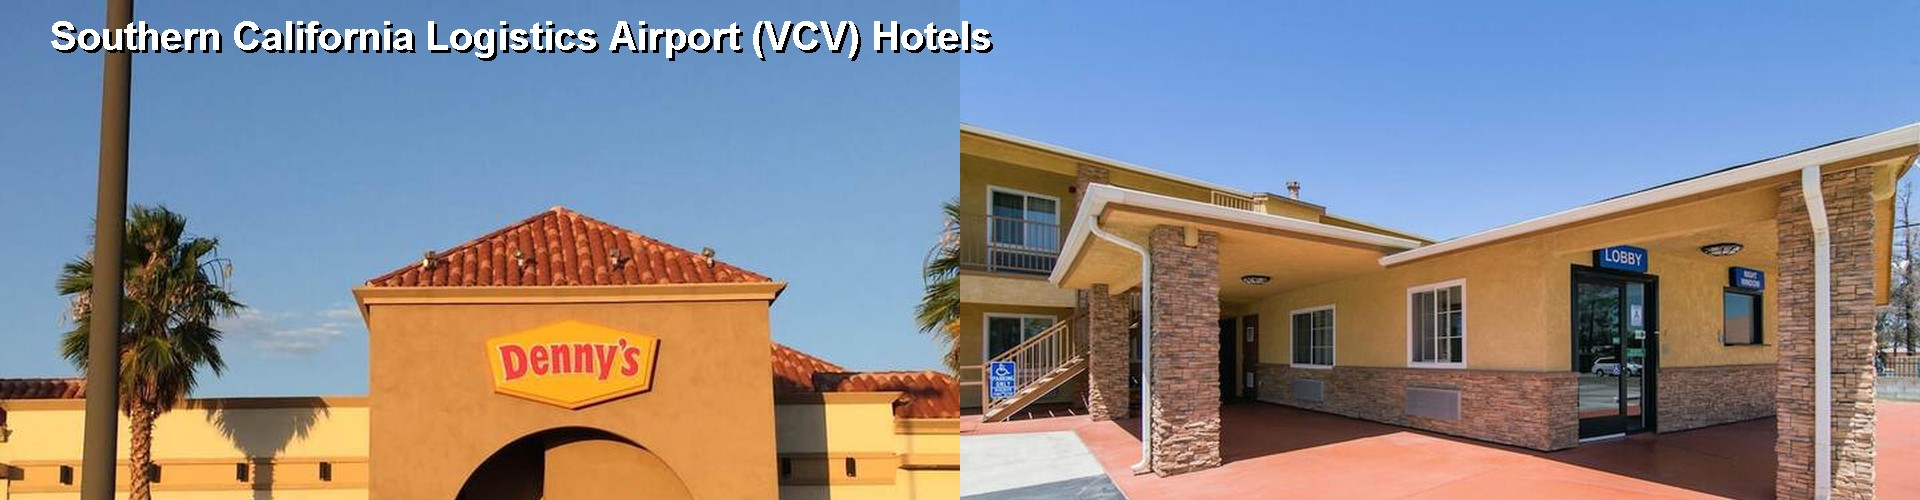 5 Best Hotels near Southern California Logistics Airport (VCV)